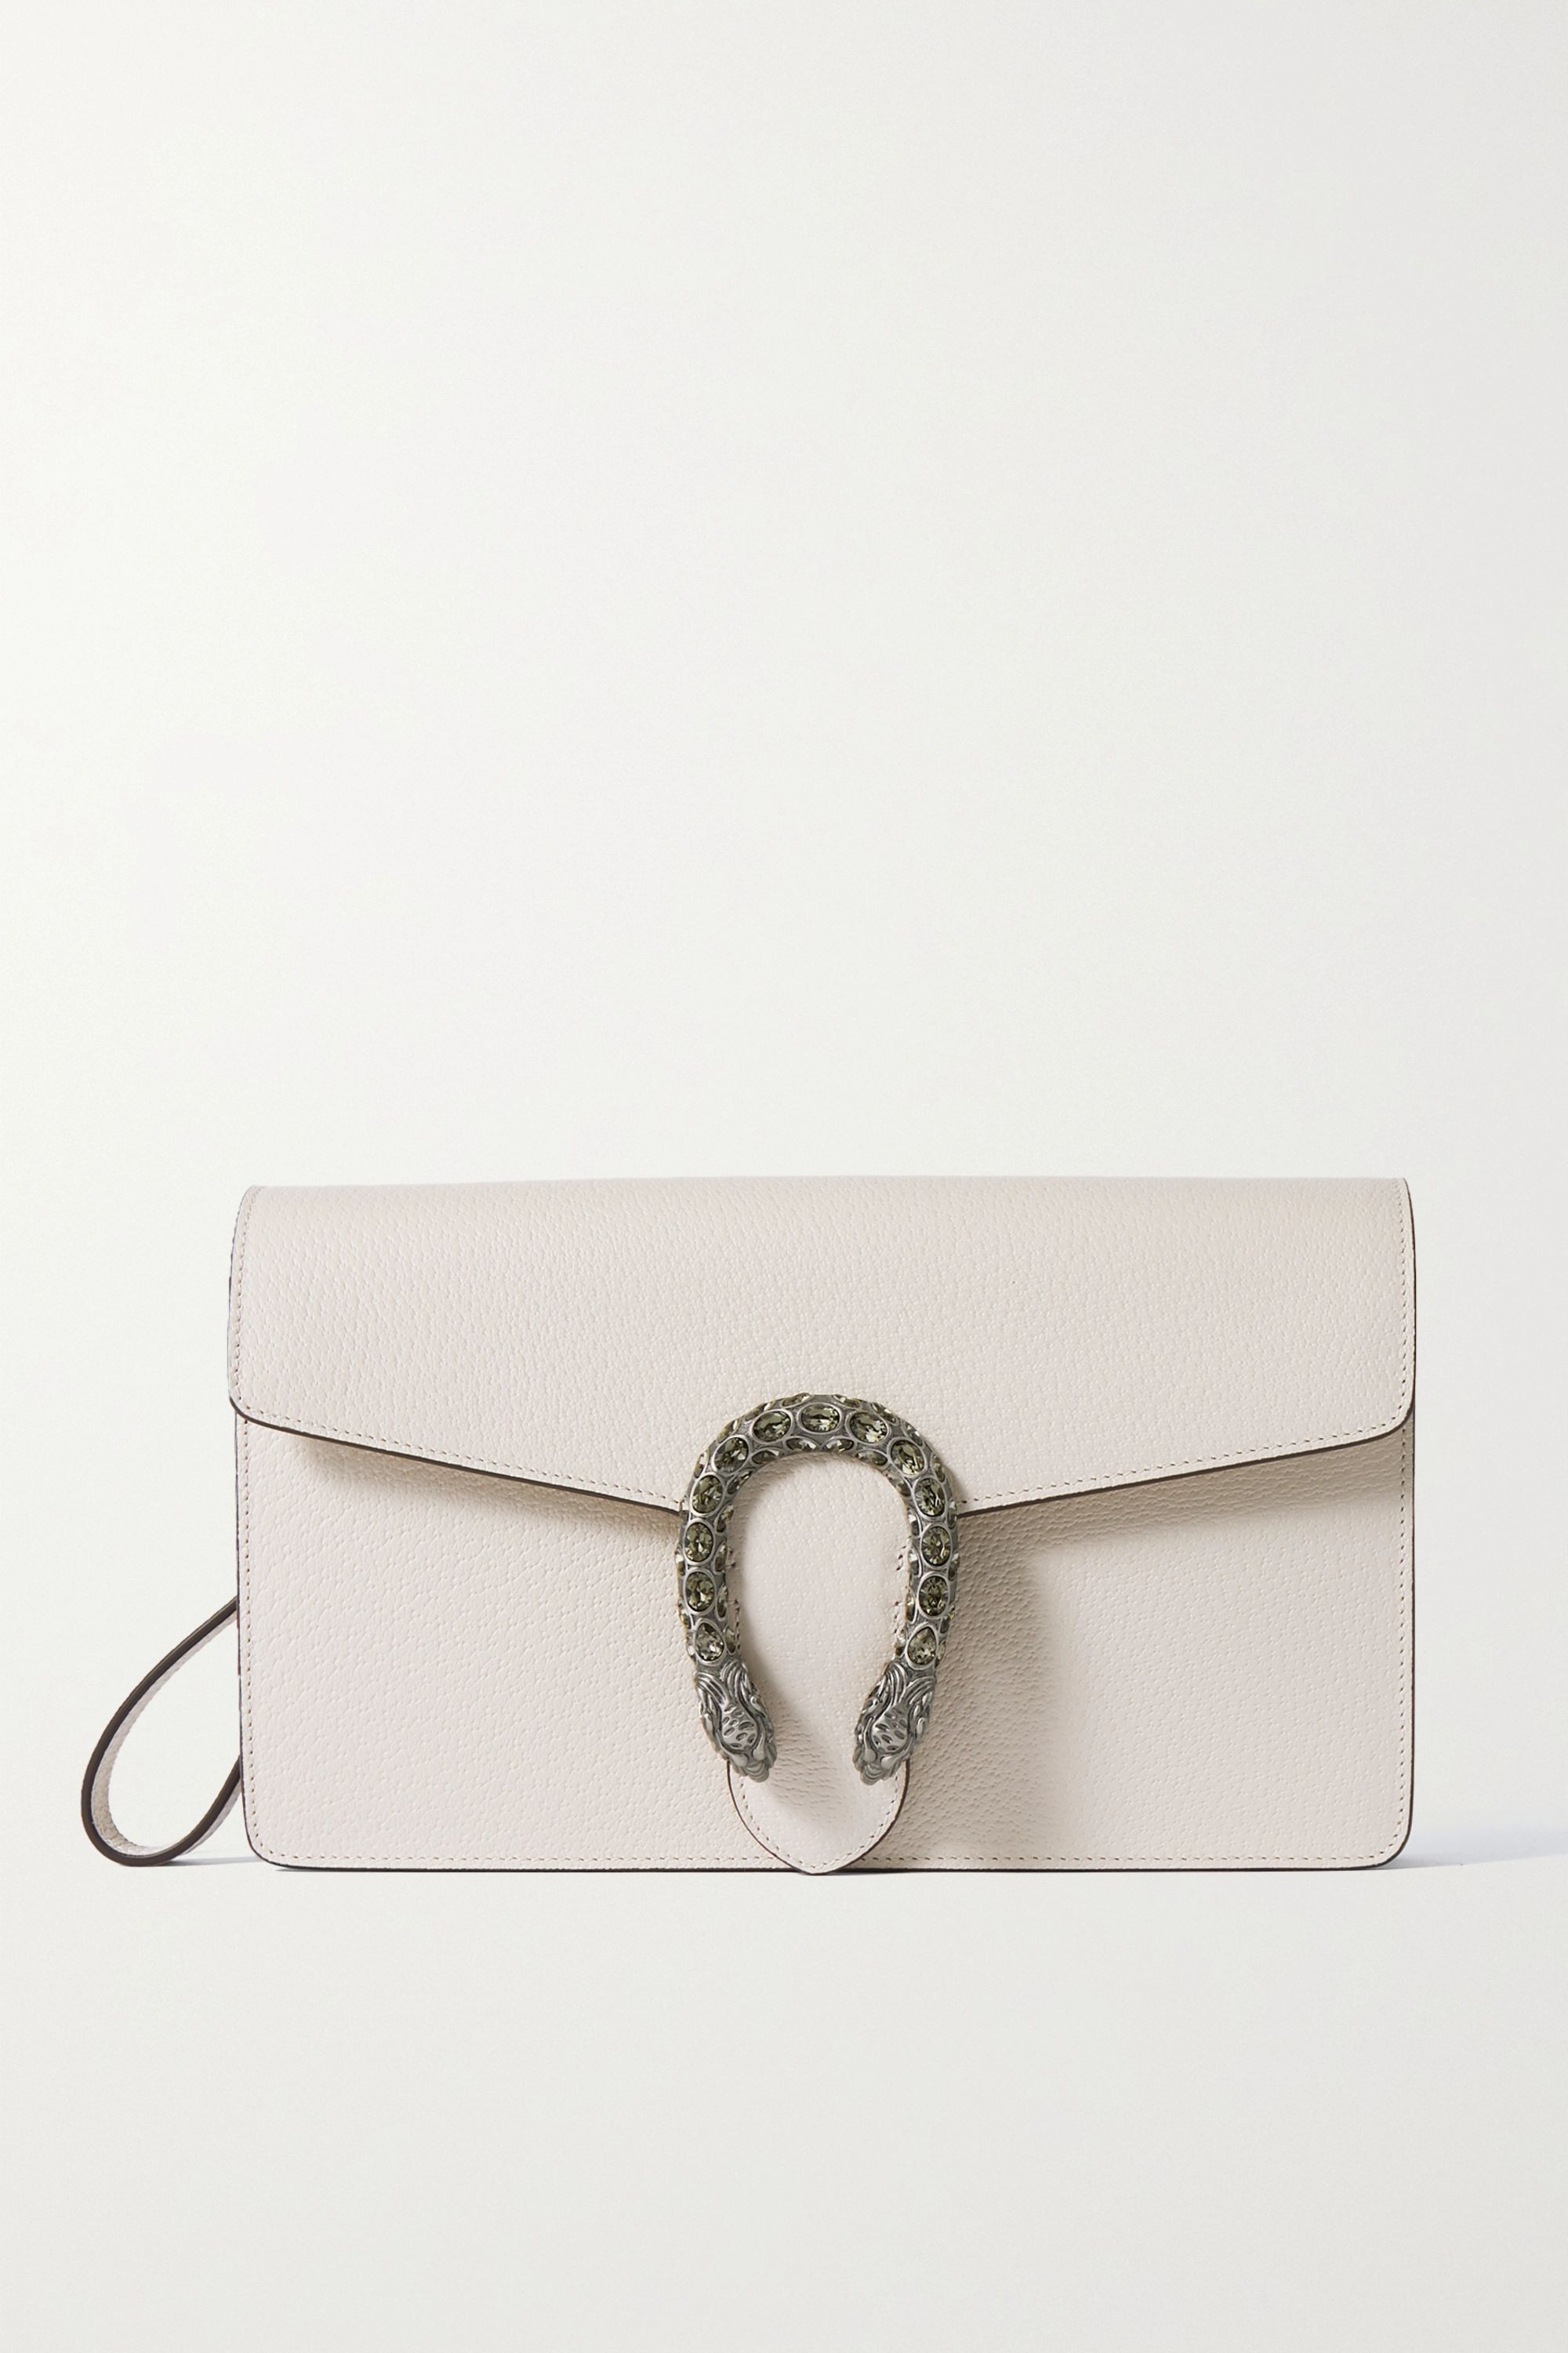 Gucci Dionysus crystal-embellished textured-leather clutch